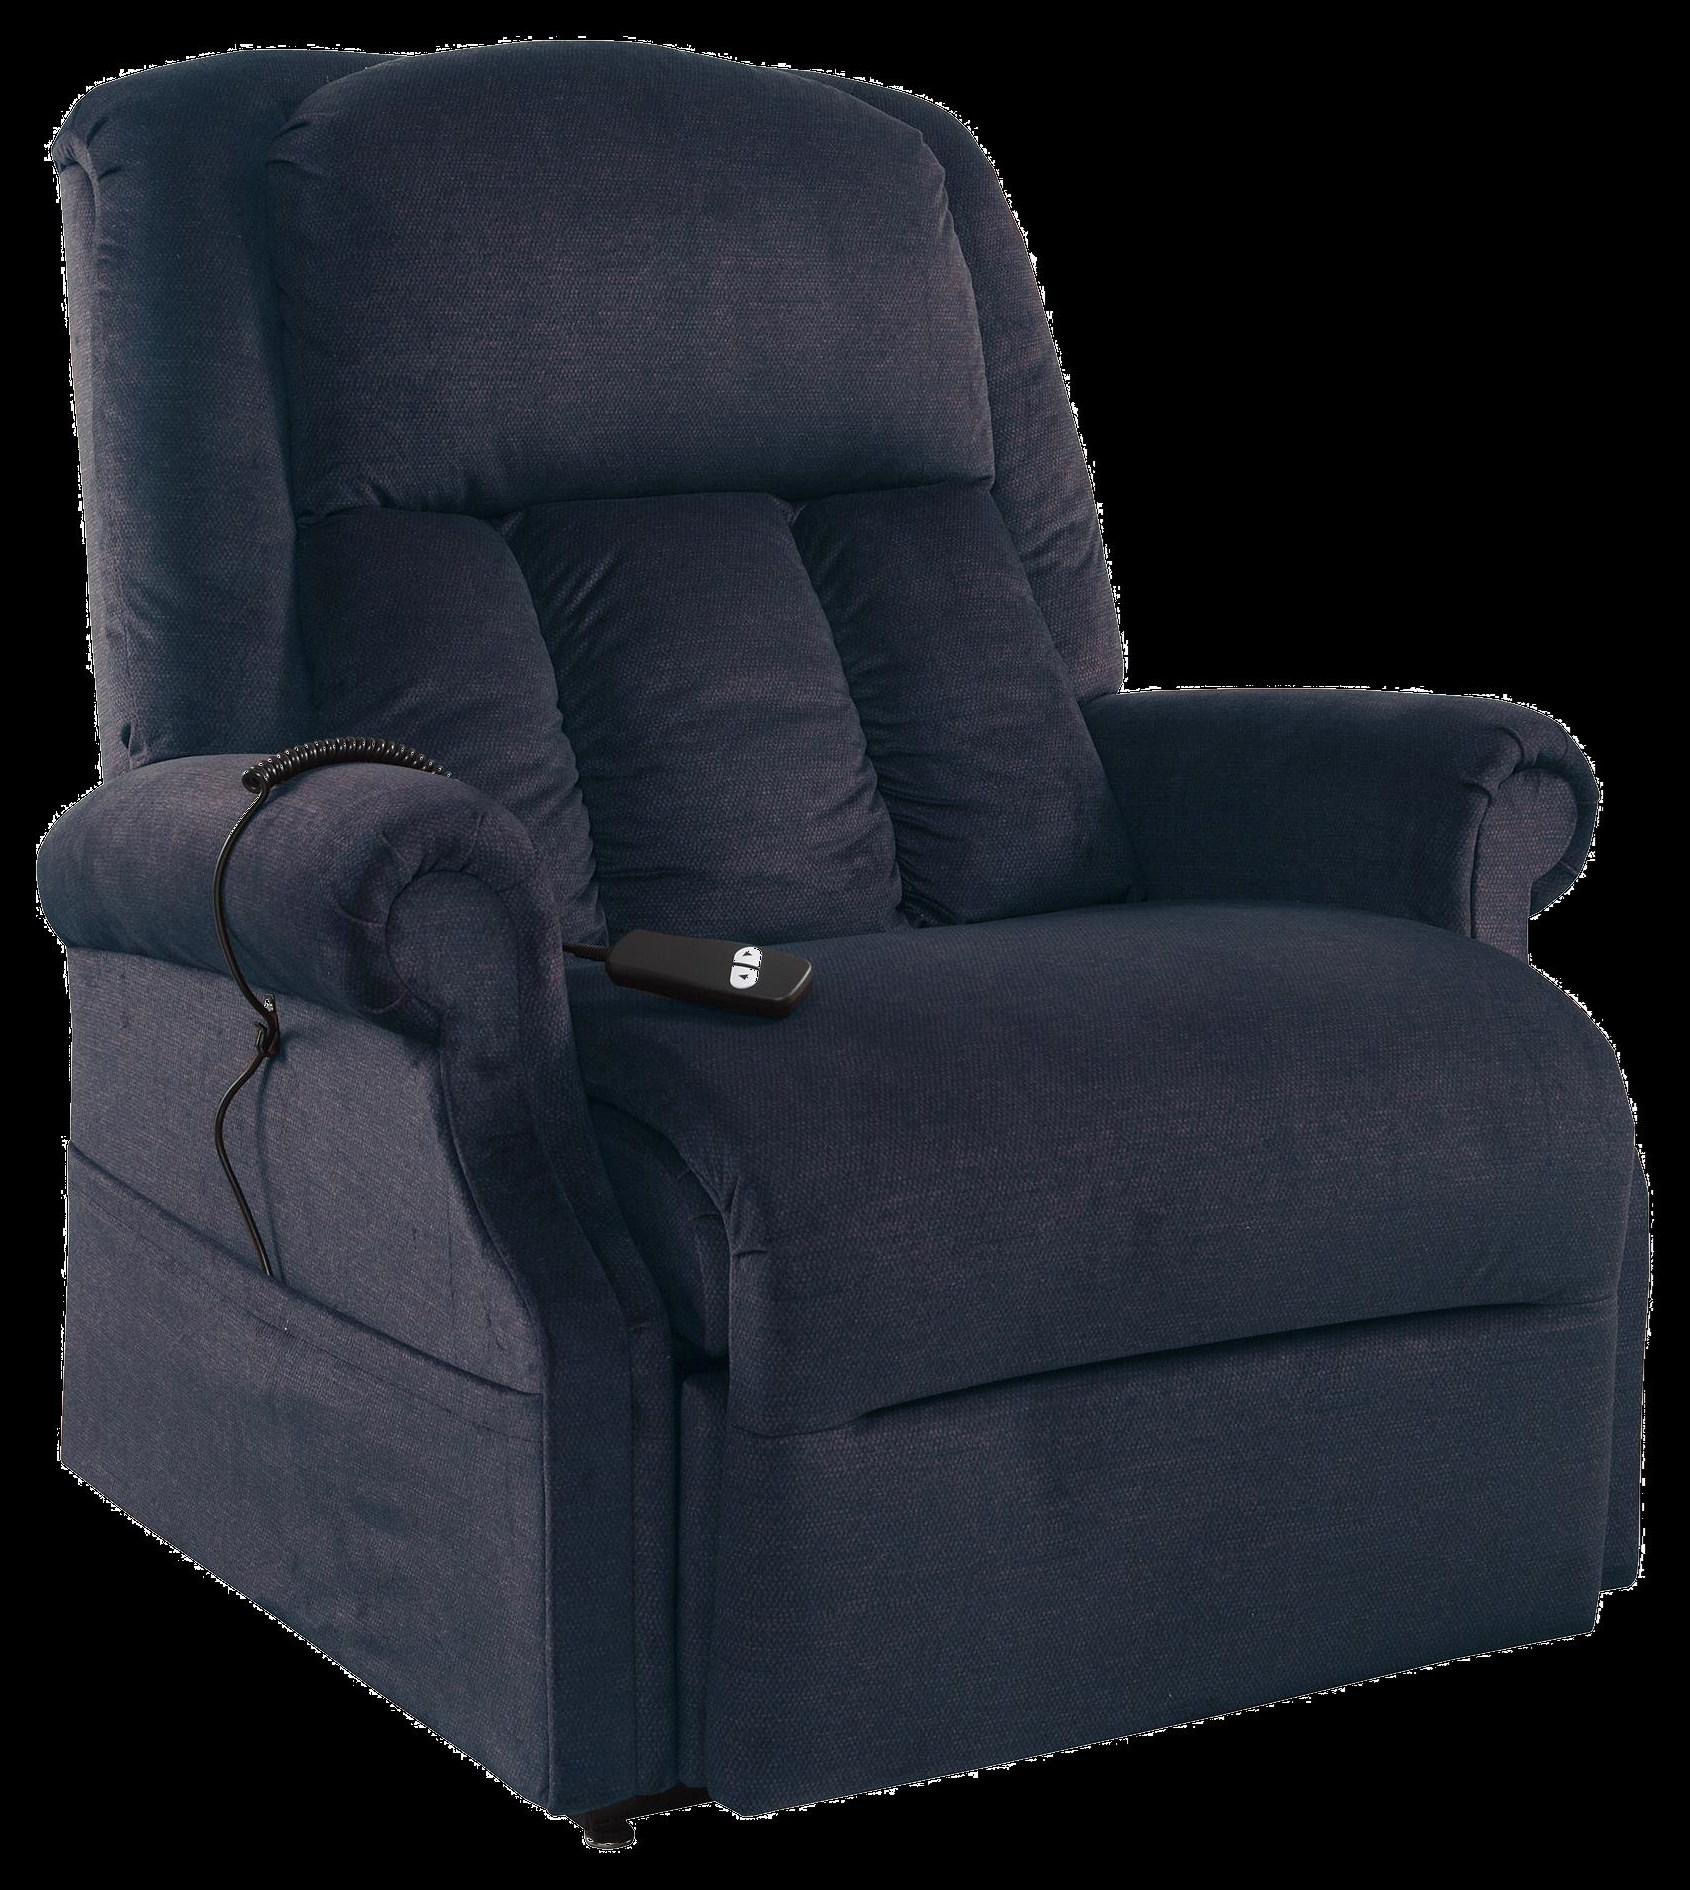 Lift Chairs 3-Position Reclining Lift Chair with Power at Ruby Gordon Home